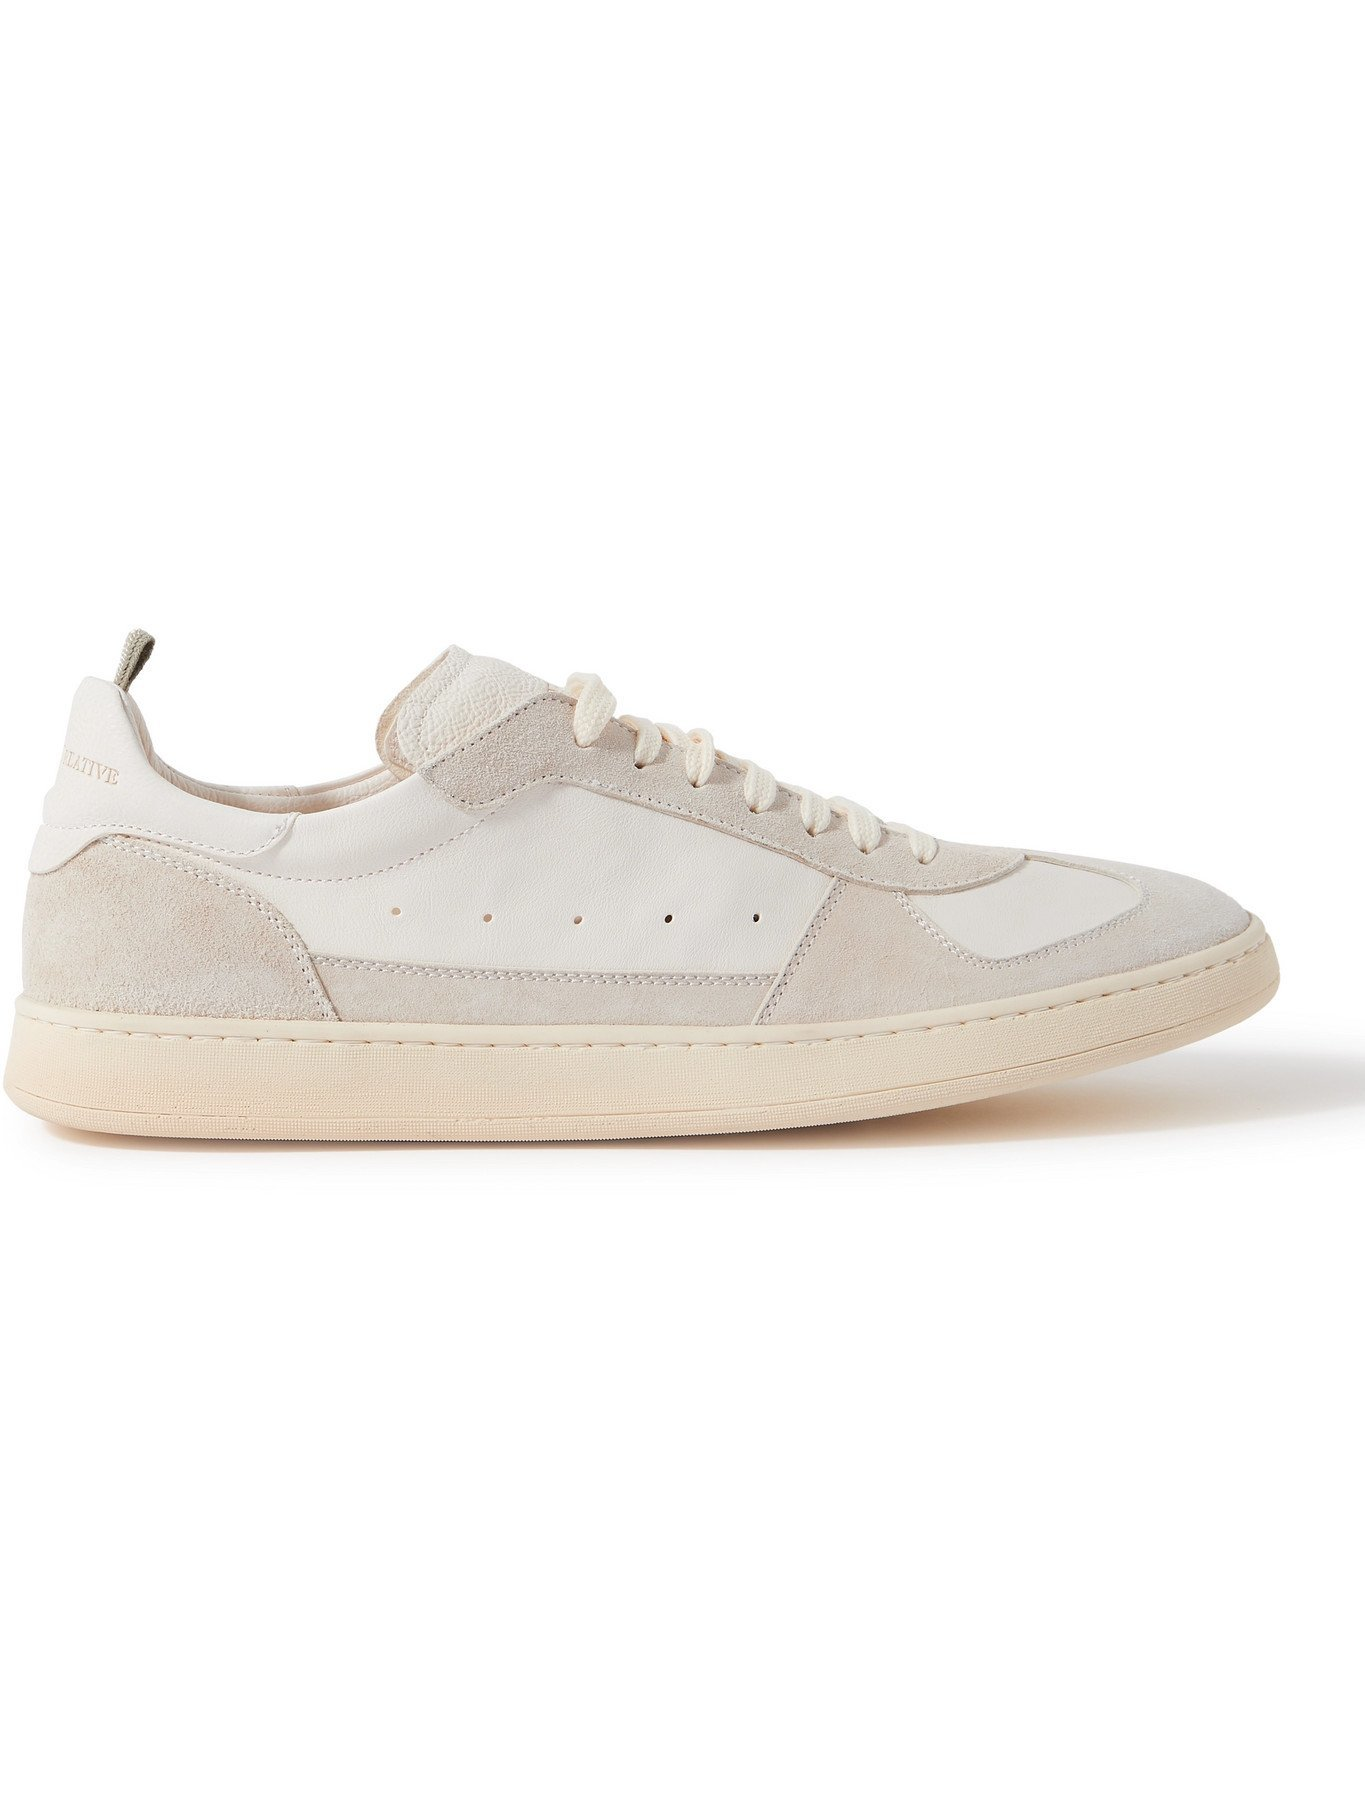 OFFICINE CREATIVE - Kadette Suede and Leather Sneakers - White